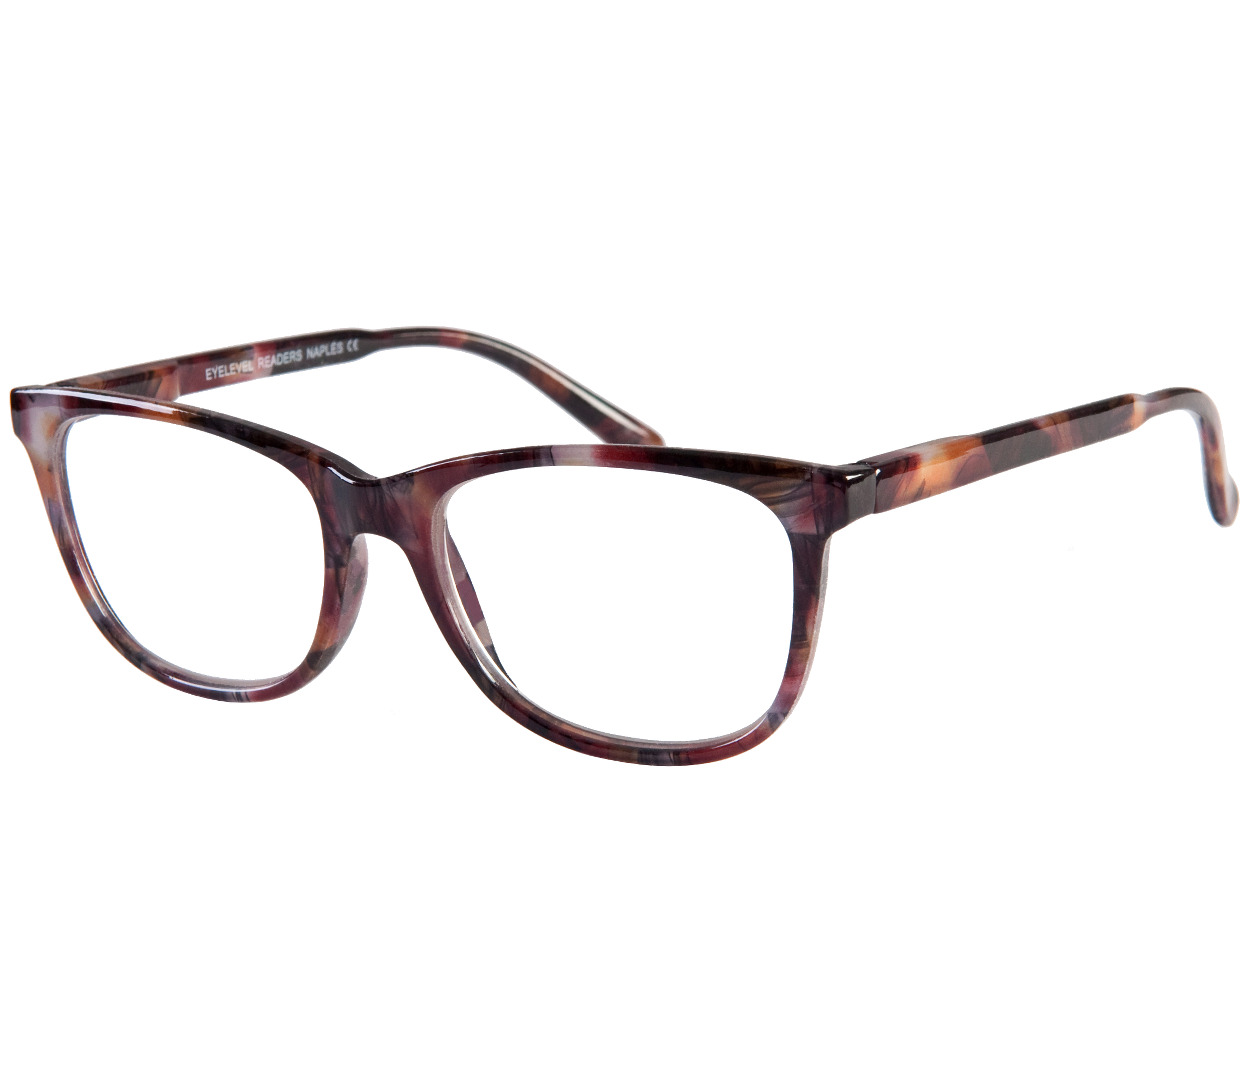 f3677070adb2 Main Image (Angle) - Zara (Brown) Reading Glasses ...